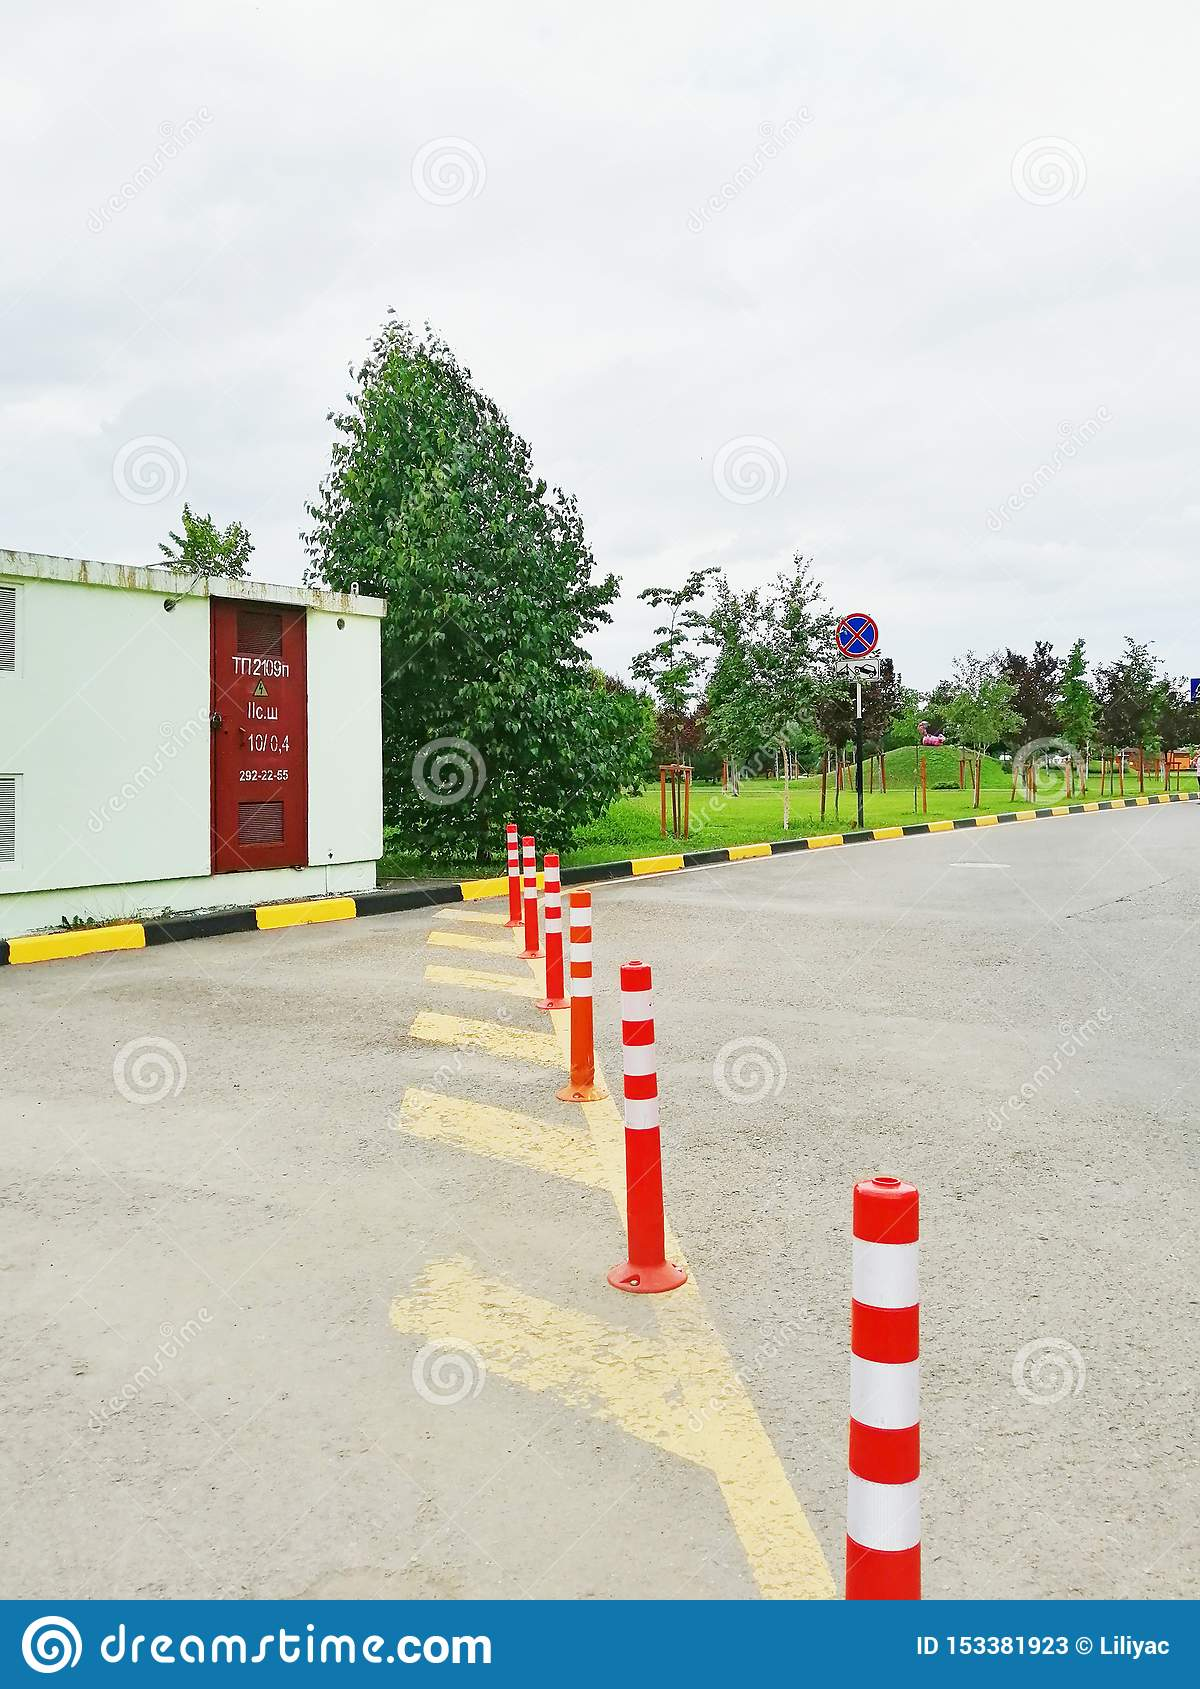 Yellow road markings and pillars to limit